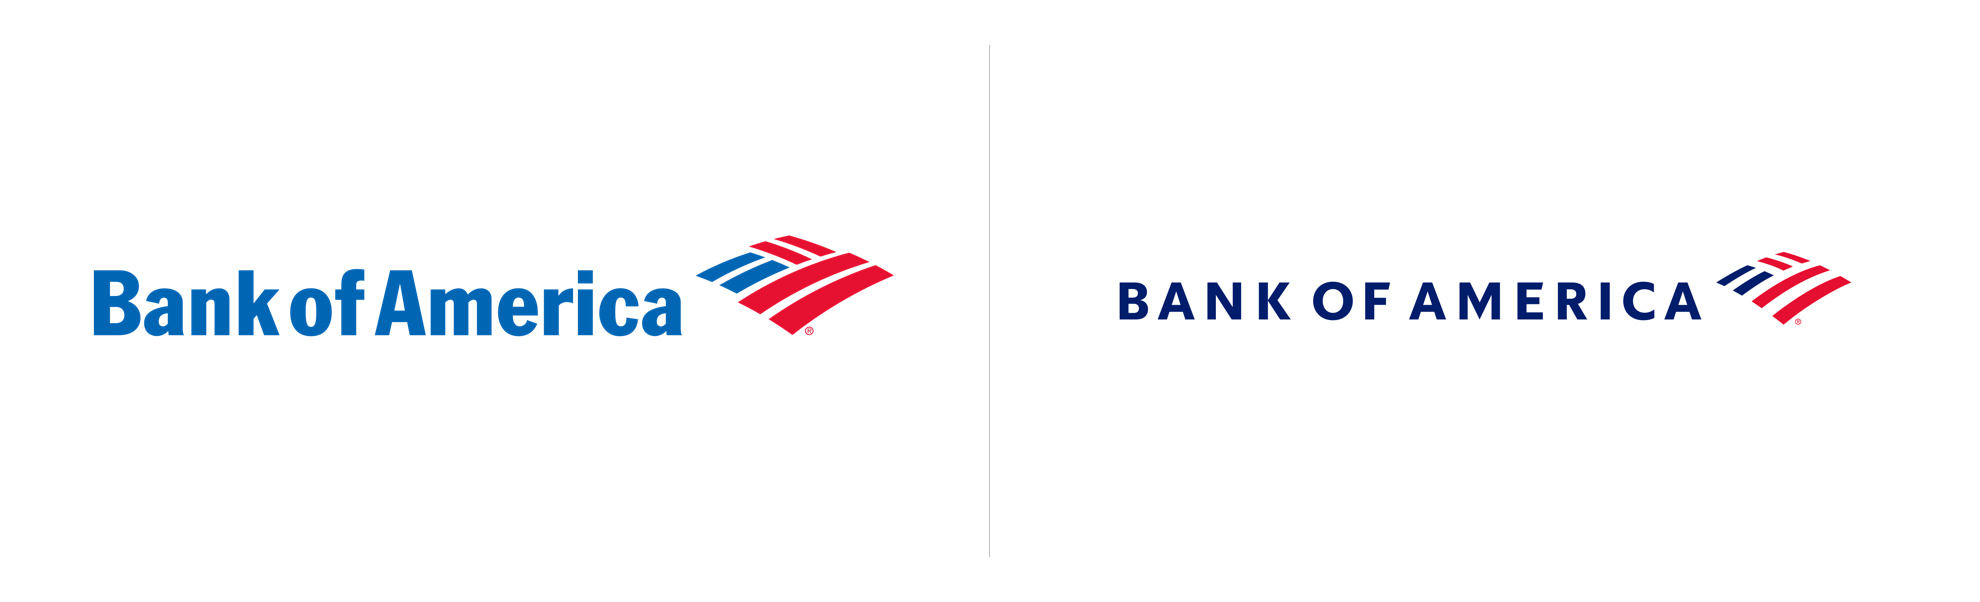 nowe i stare logo bank of america